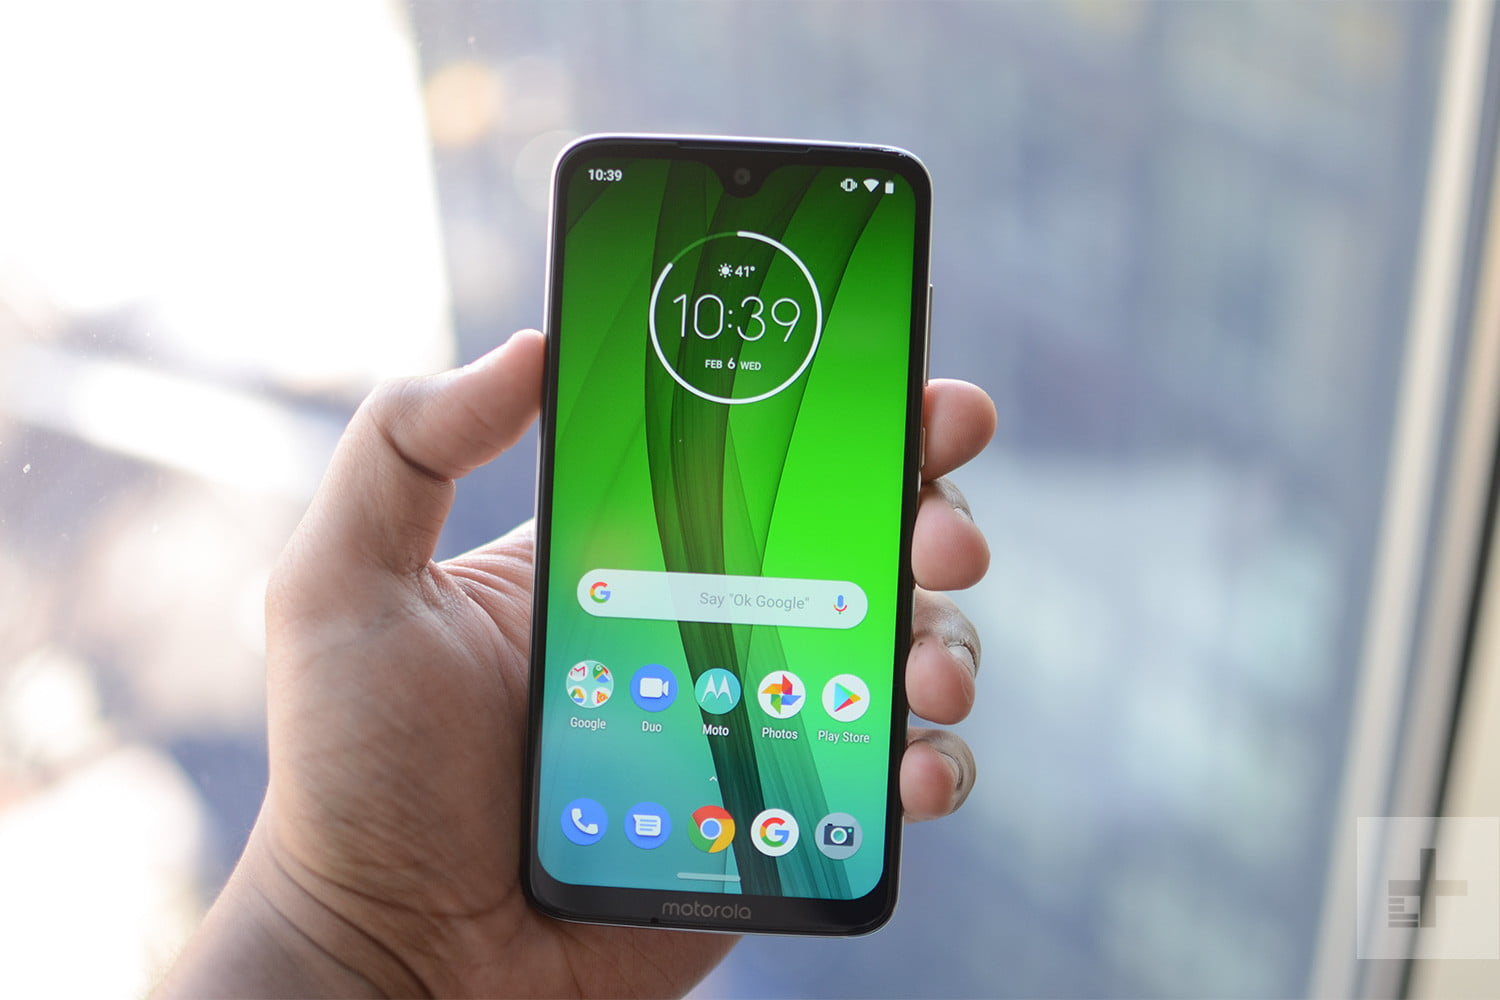 Moto G7, G7 Power, G7 Play: News, Specs, Pricing, and More